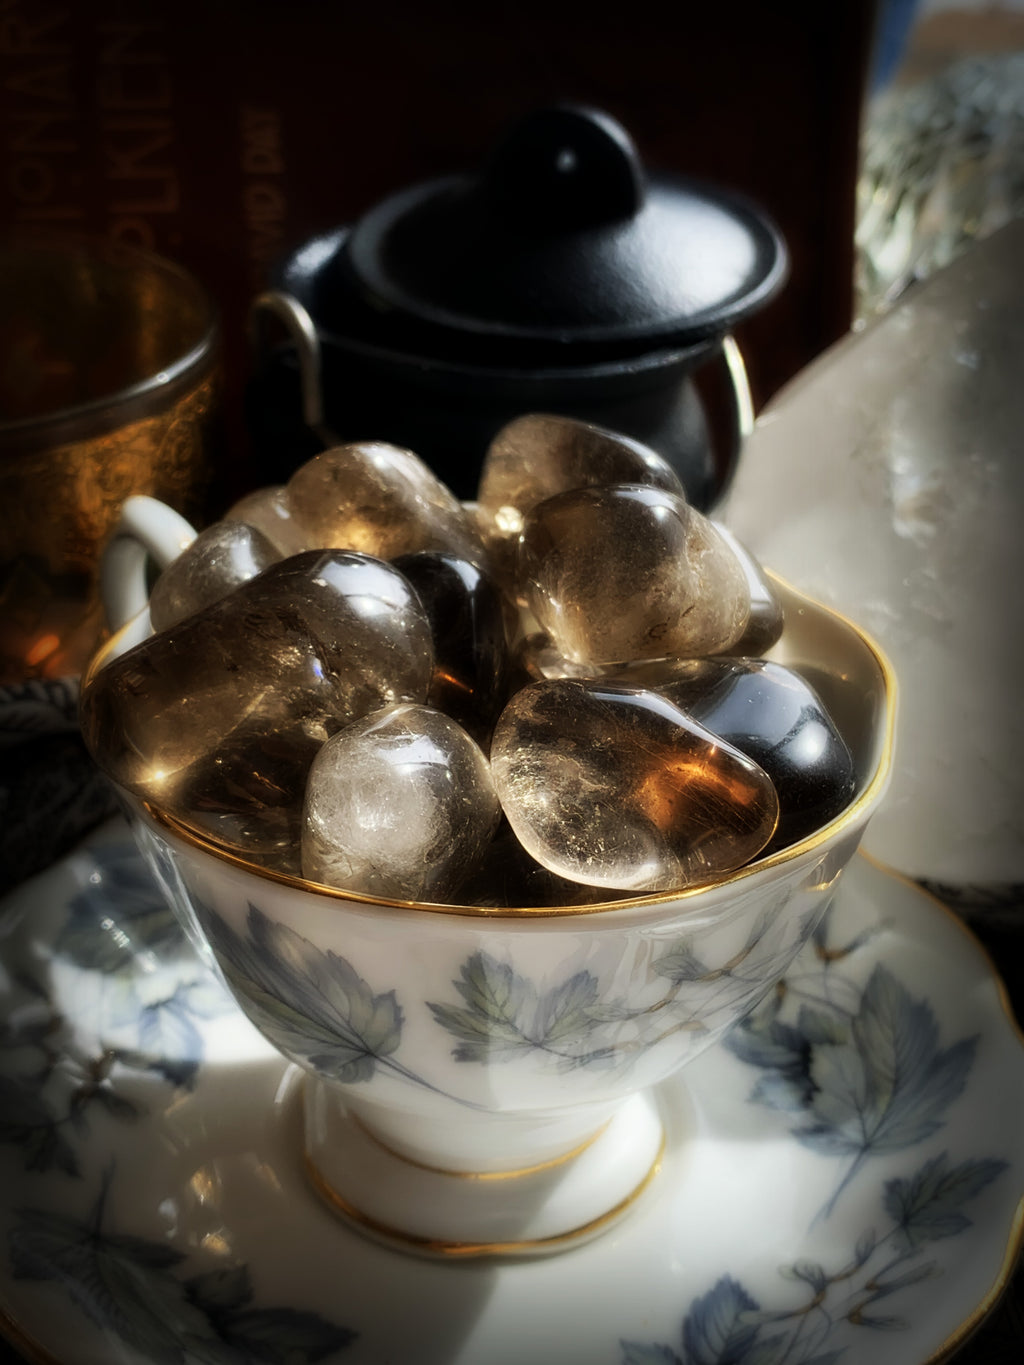 SMOKY QUARTZ TUMBLED CRYSTAL ~ For Grounding and Cleansing Negativity